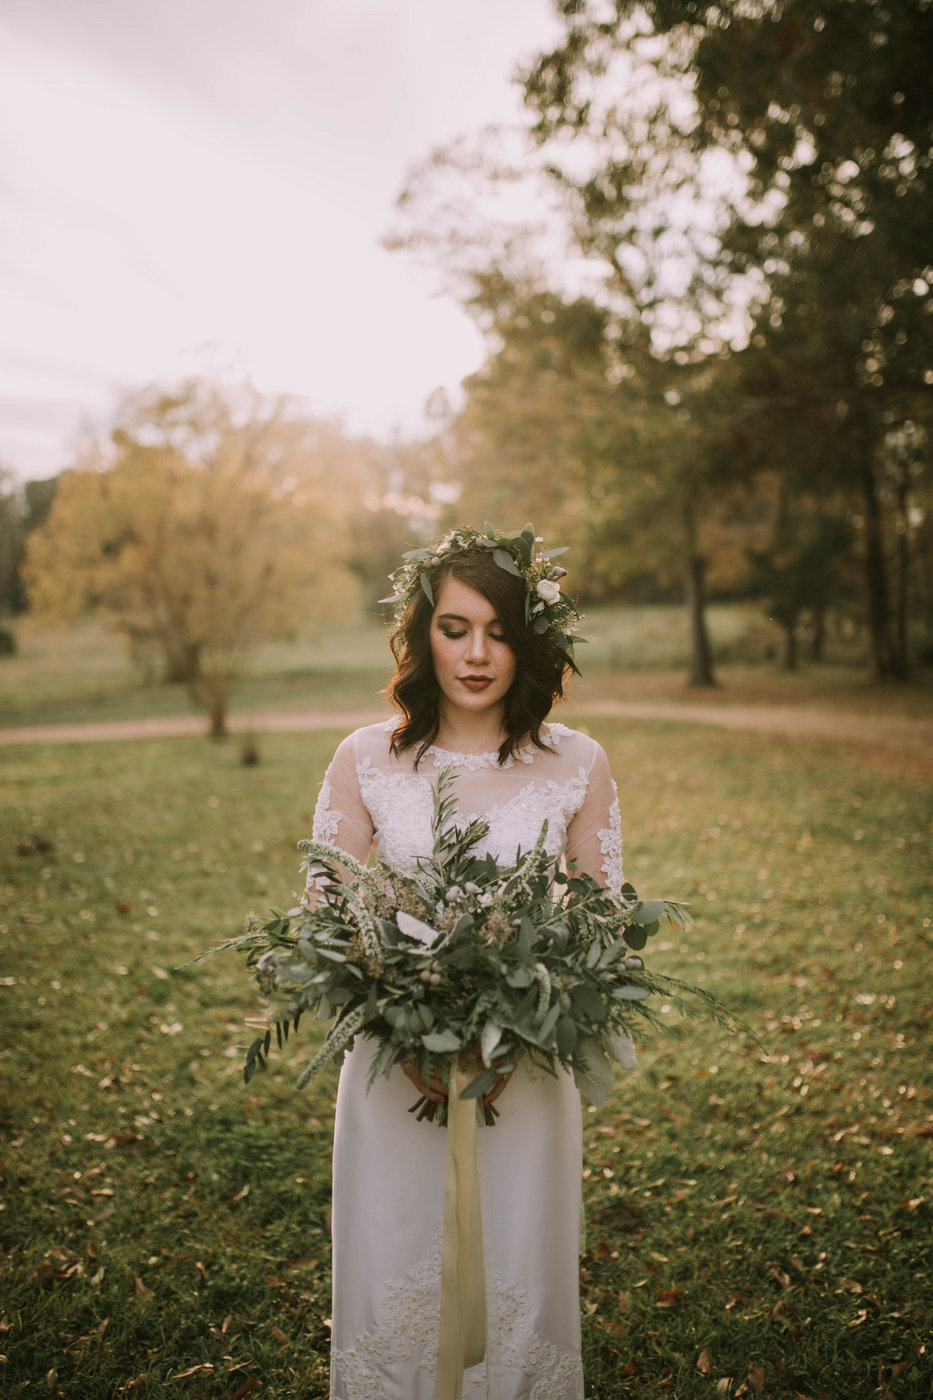 The UltimateWedding Guide - From the details of getting ready, to the end of the grand reception. We want to help plan your absolute best day ever!